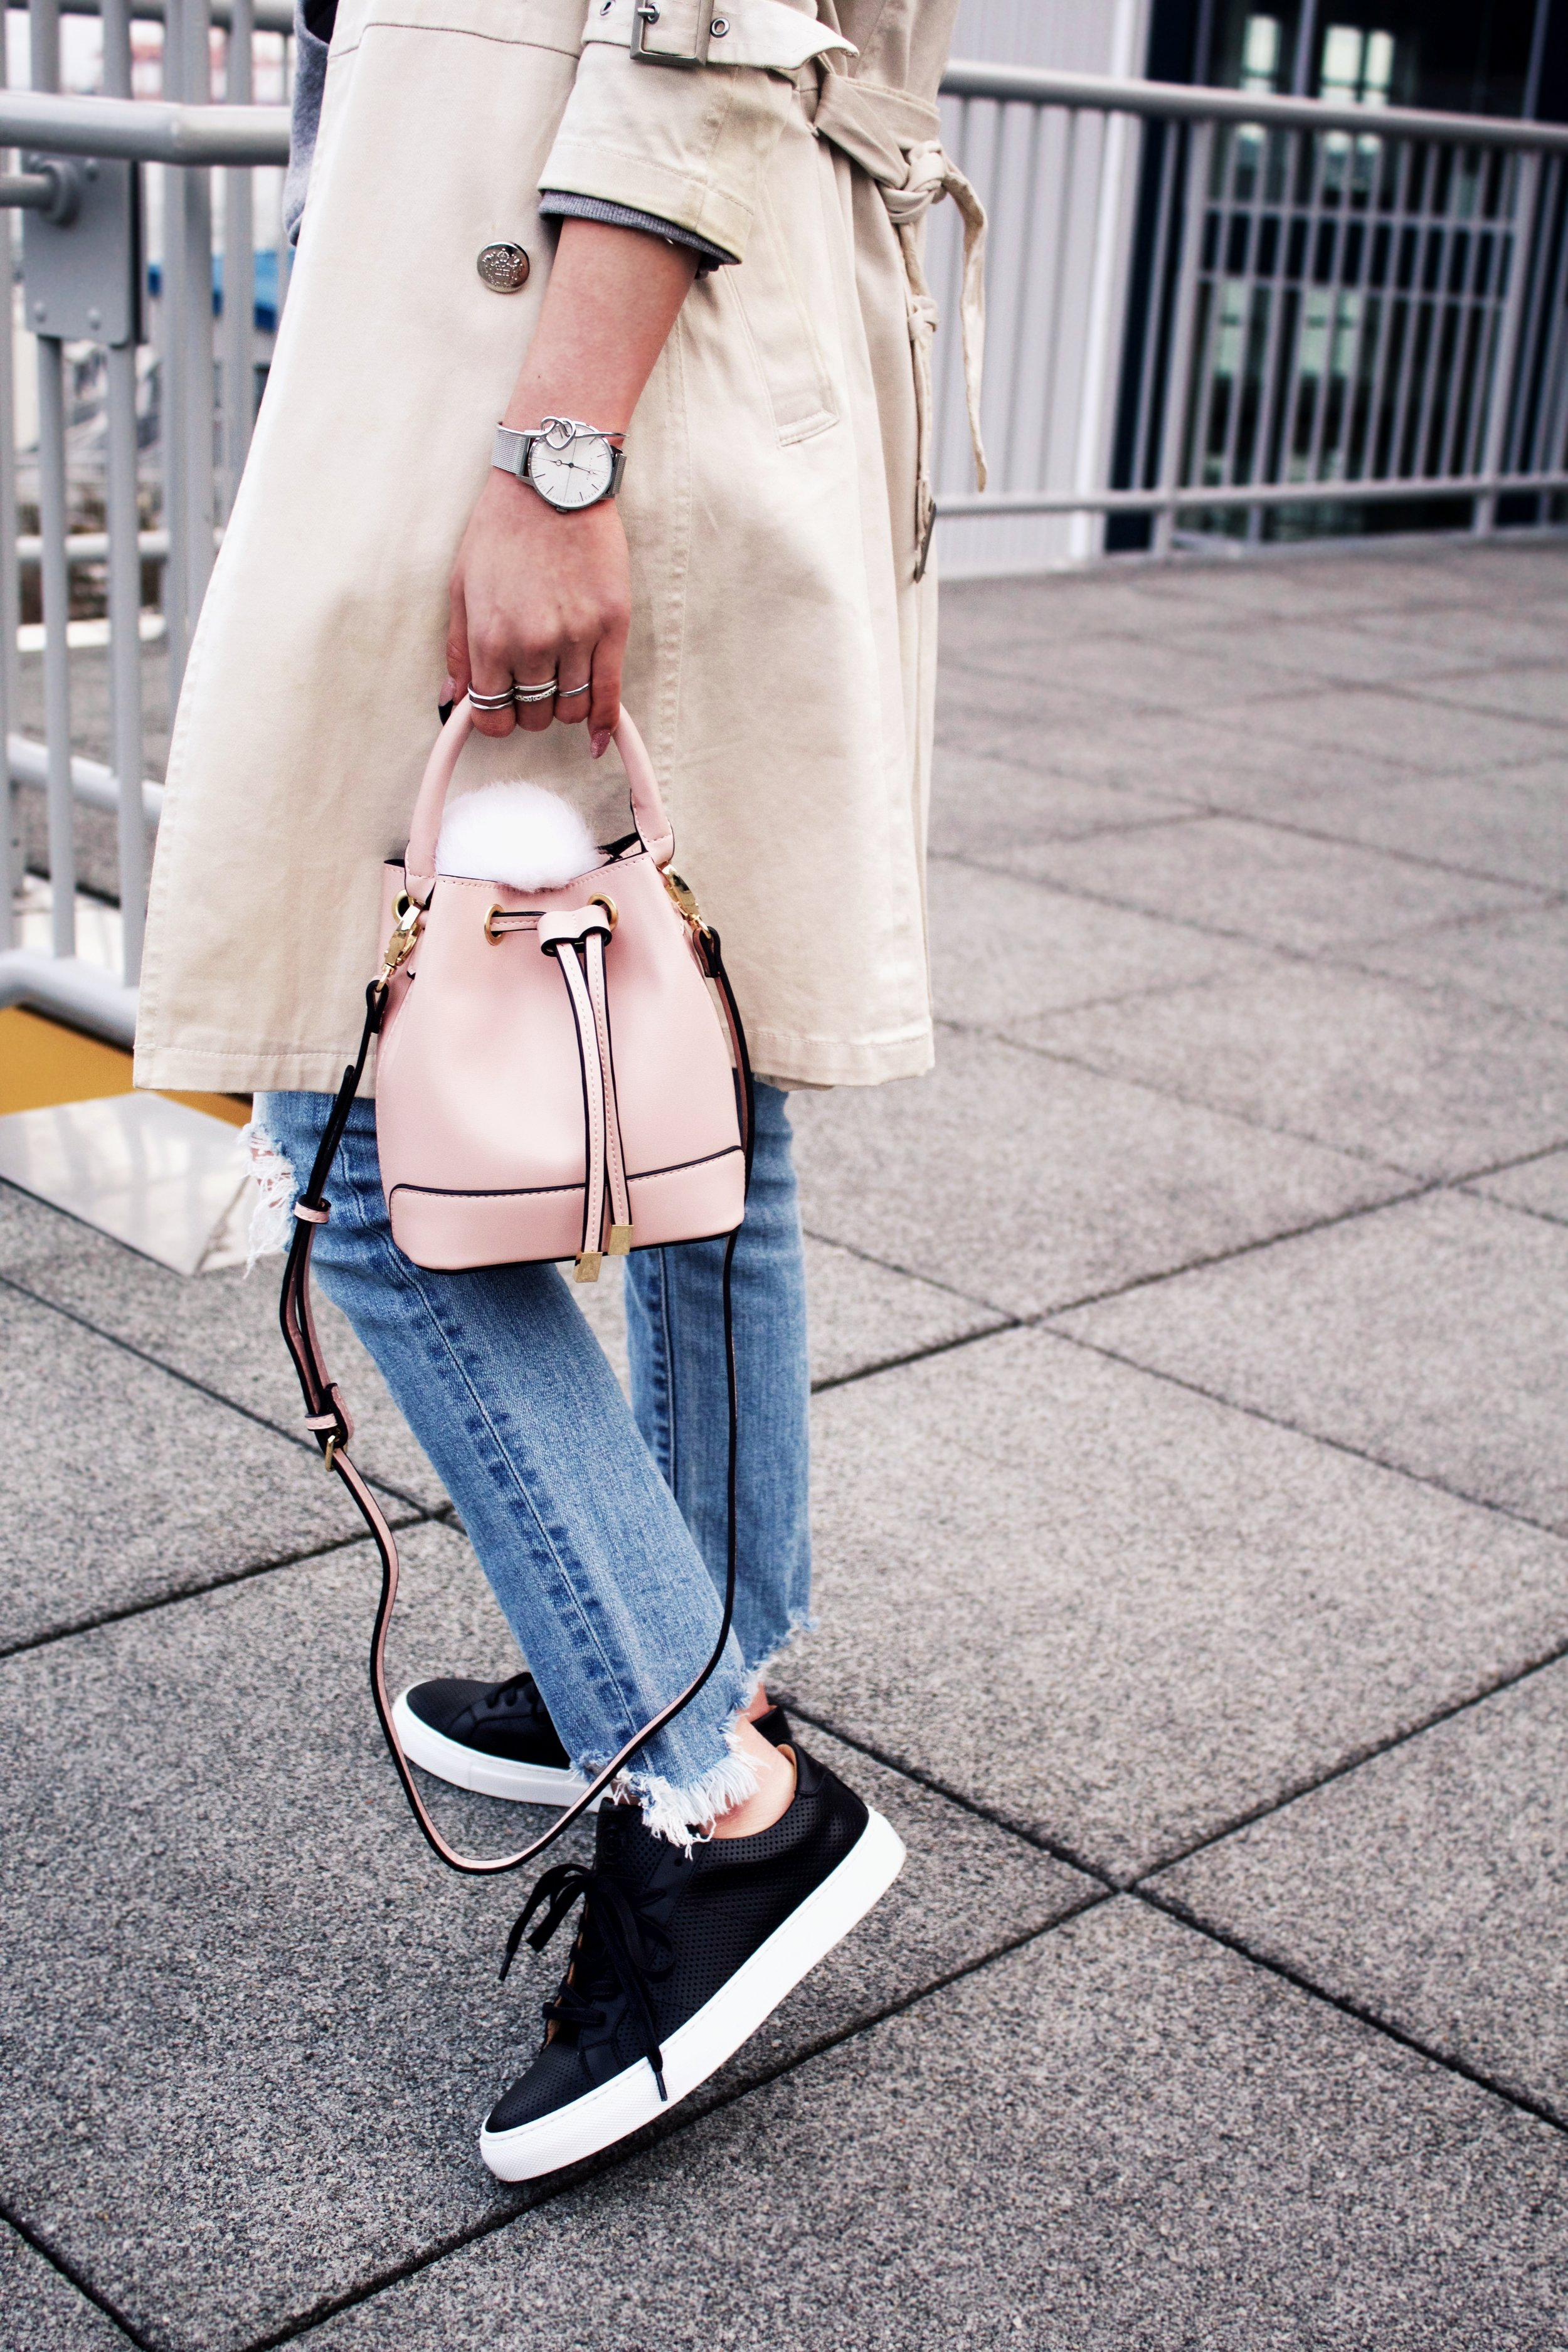 Greats THE ROYALE_Black Leather Sneakers_H&M Gray hoodie_Uniqlo Trench Coat_Moussy Frayed Jeans_Forever 21 Blush Mini Bucket Bag_Aikas love Closet_Seattle Fashion Style Blogger_Japanese 14